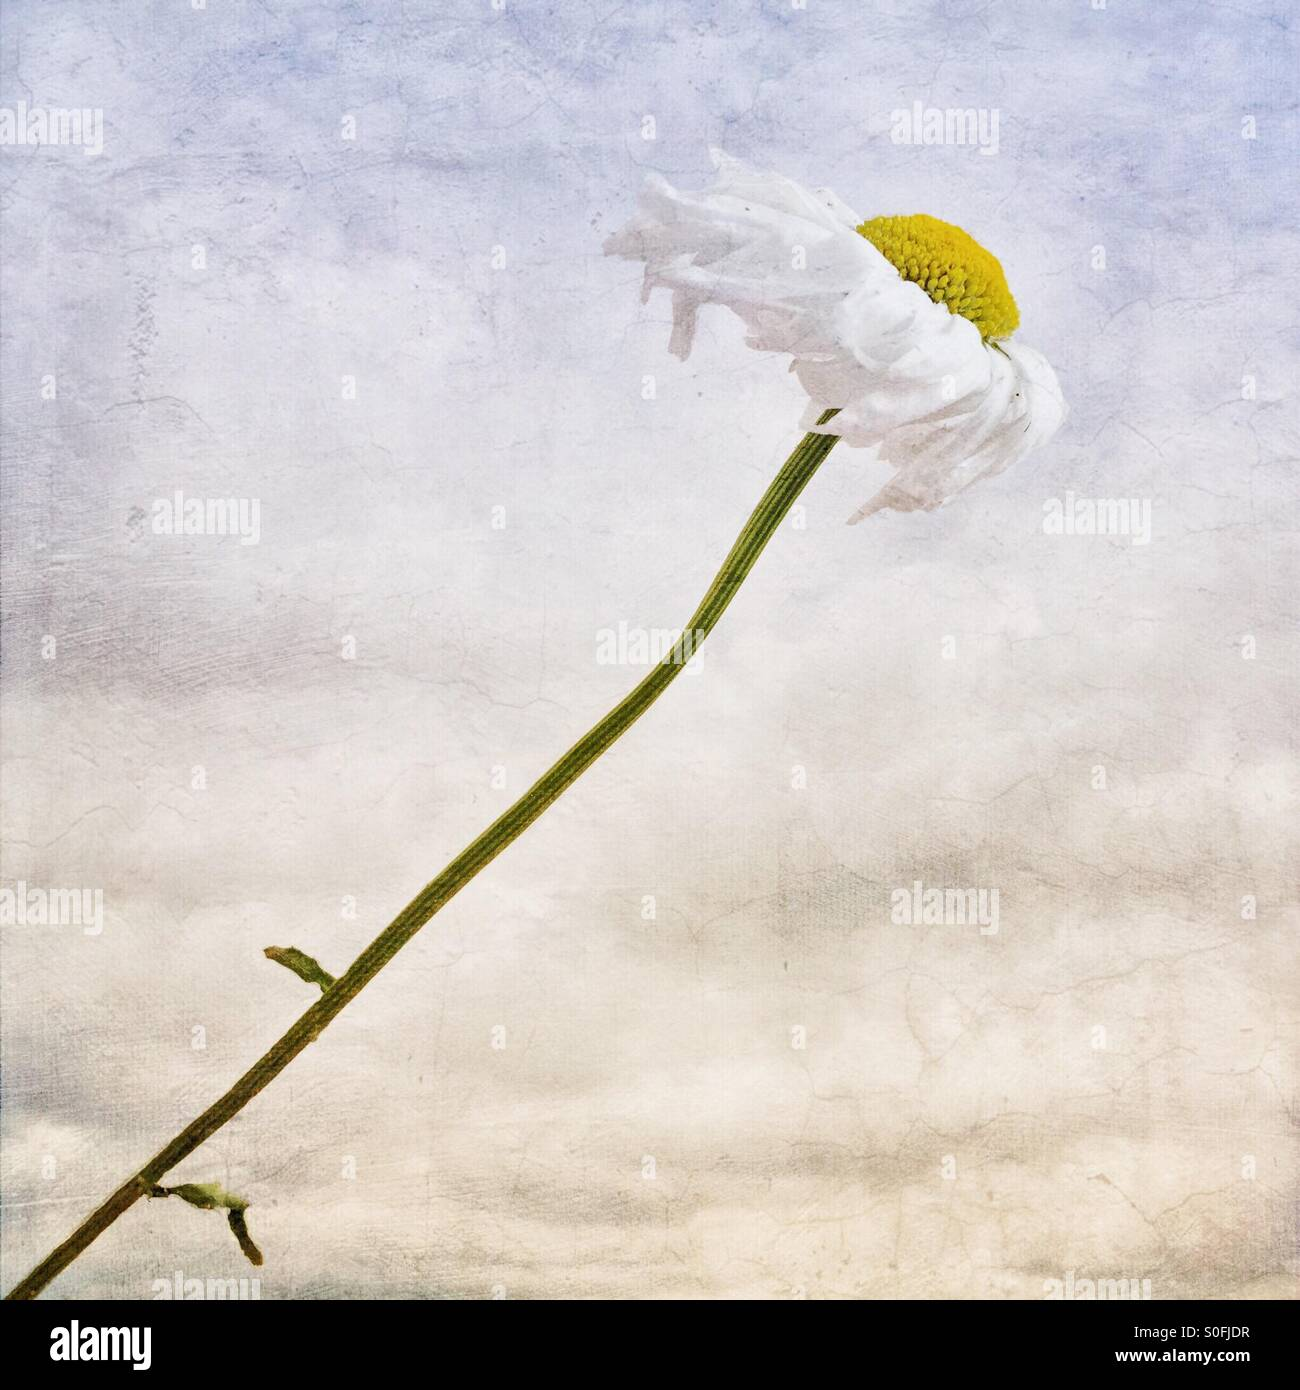 'Making My Own Way' (Concept: Unrequited Love) Solitary daisy leaning forward, as if into the wind. - Stock Image